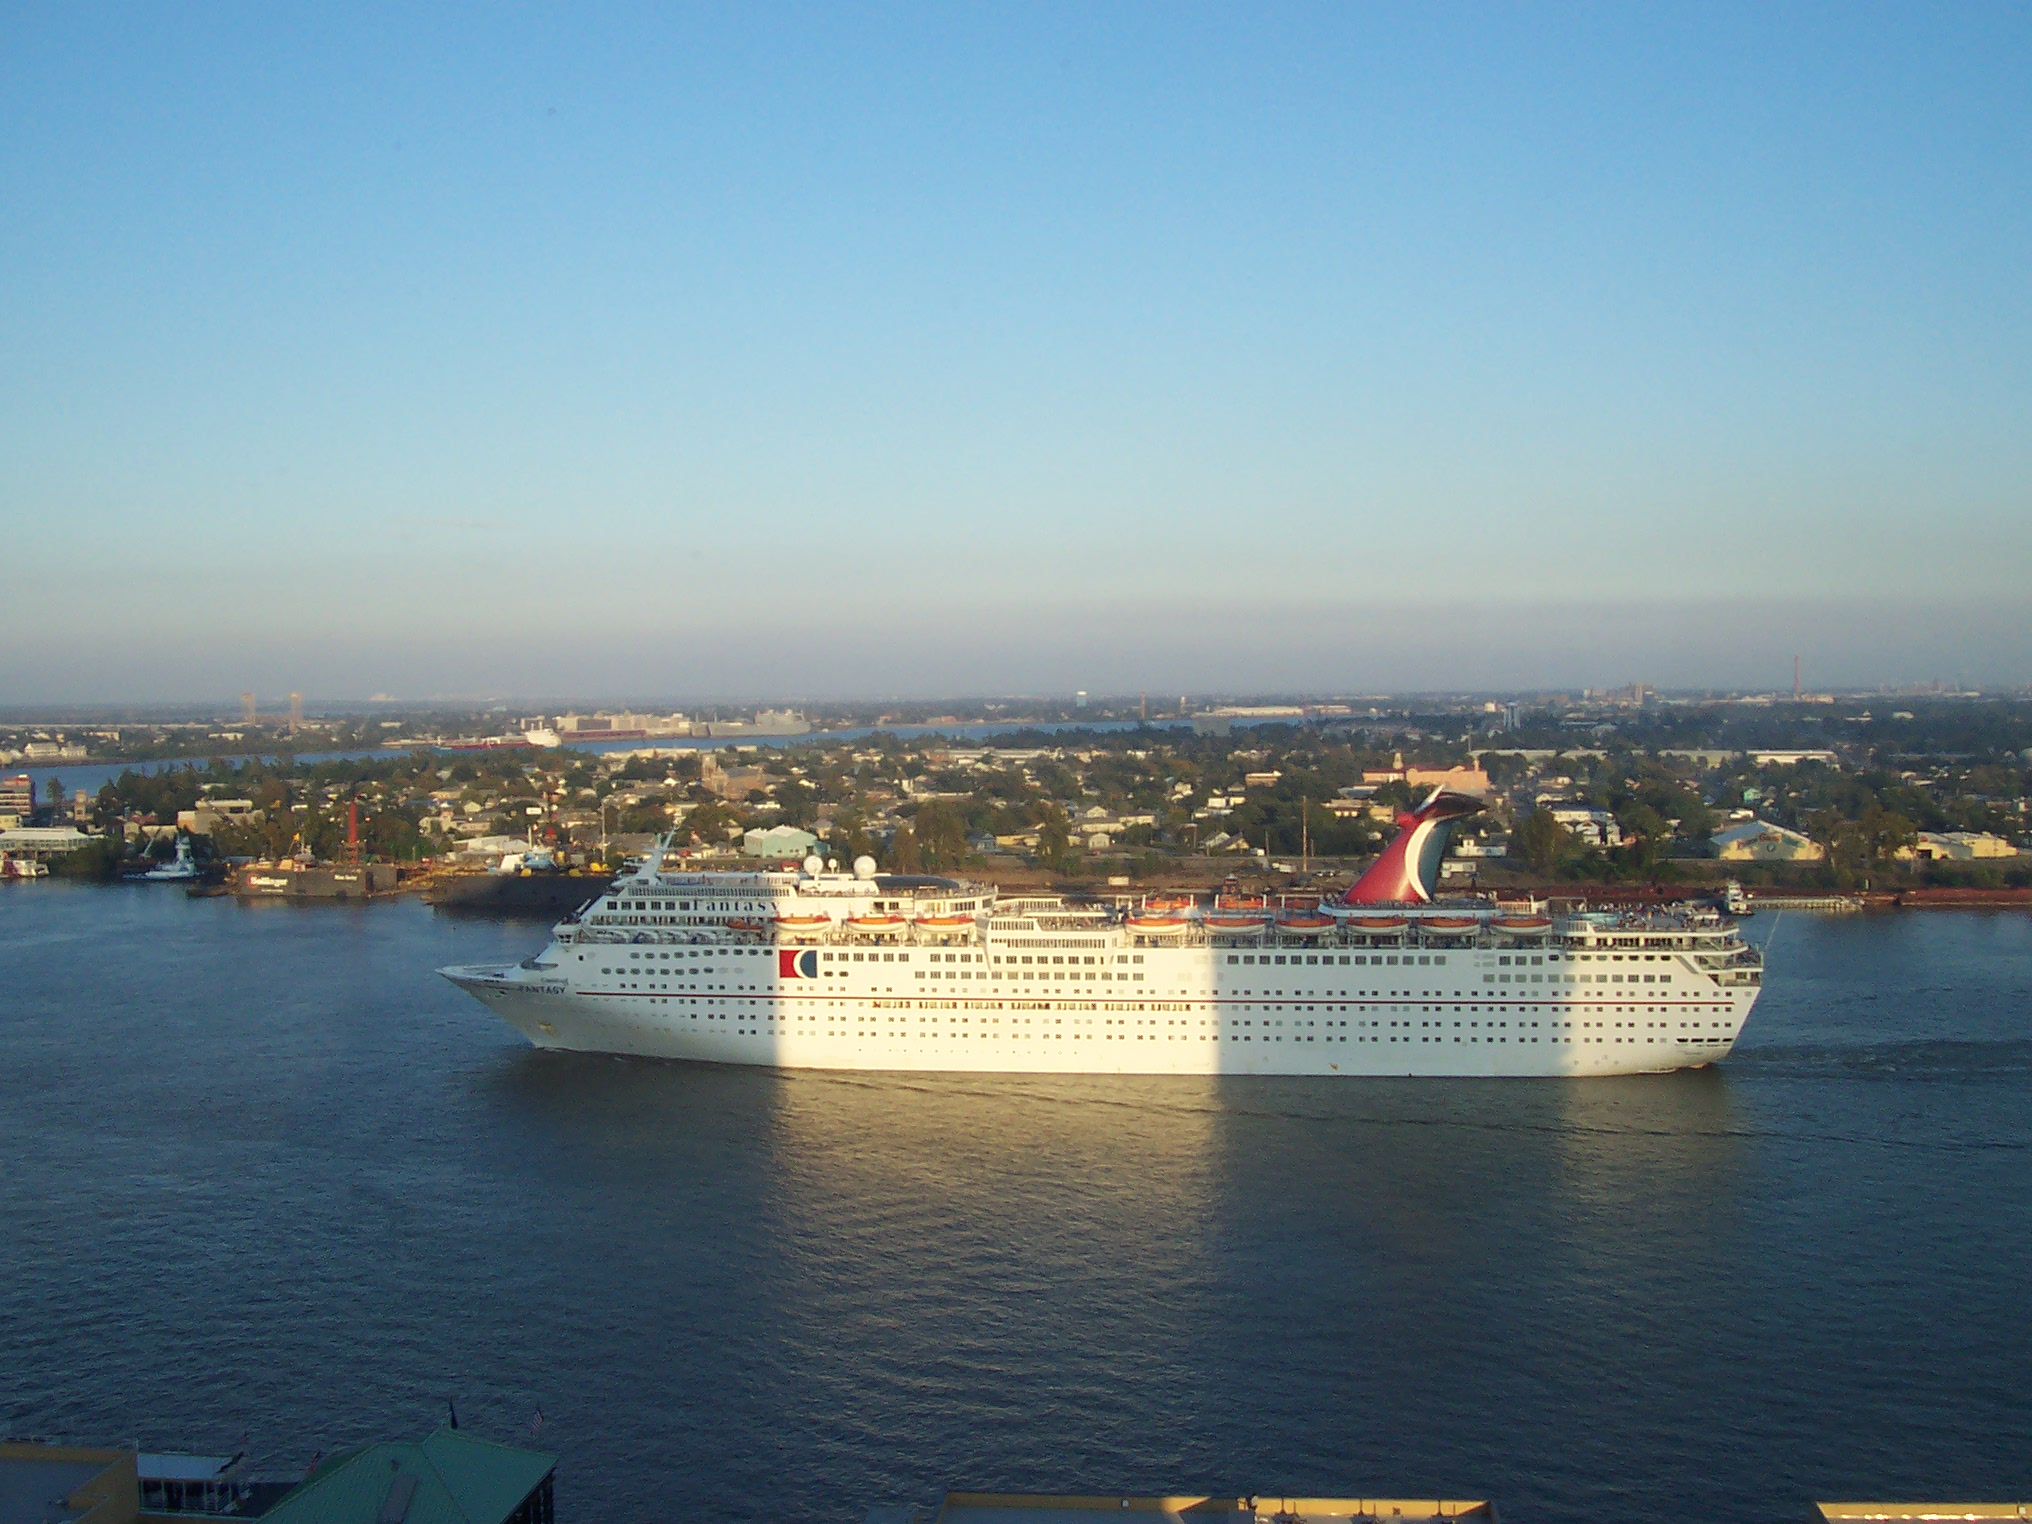 FileCruise Ship In New Orleansjpg Wikimedia Commons - Cruise ships new orleans